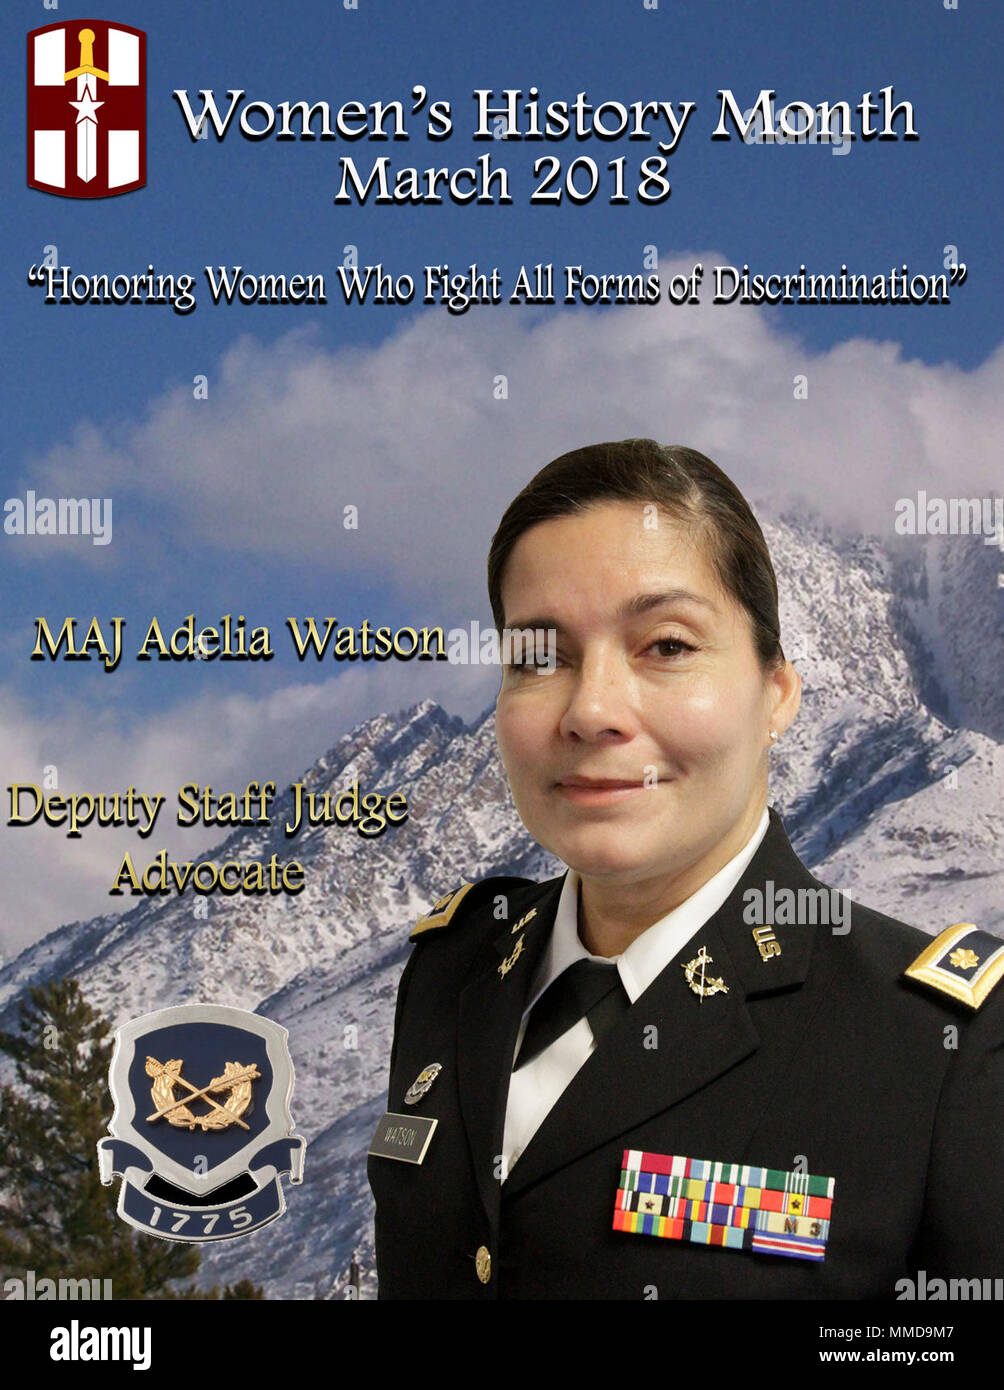 A military woman who was most influential to me in my career